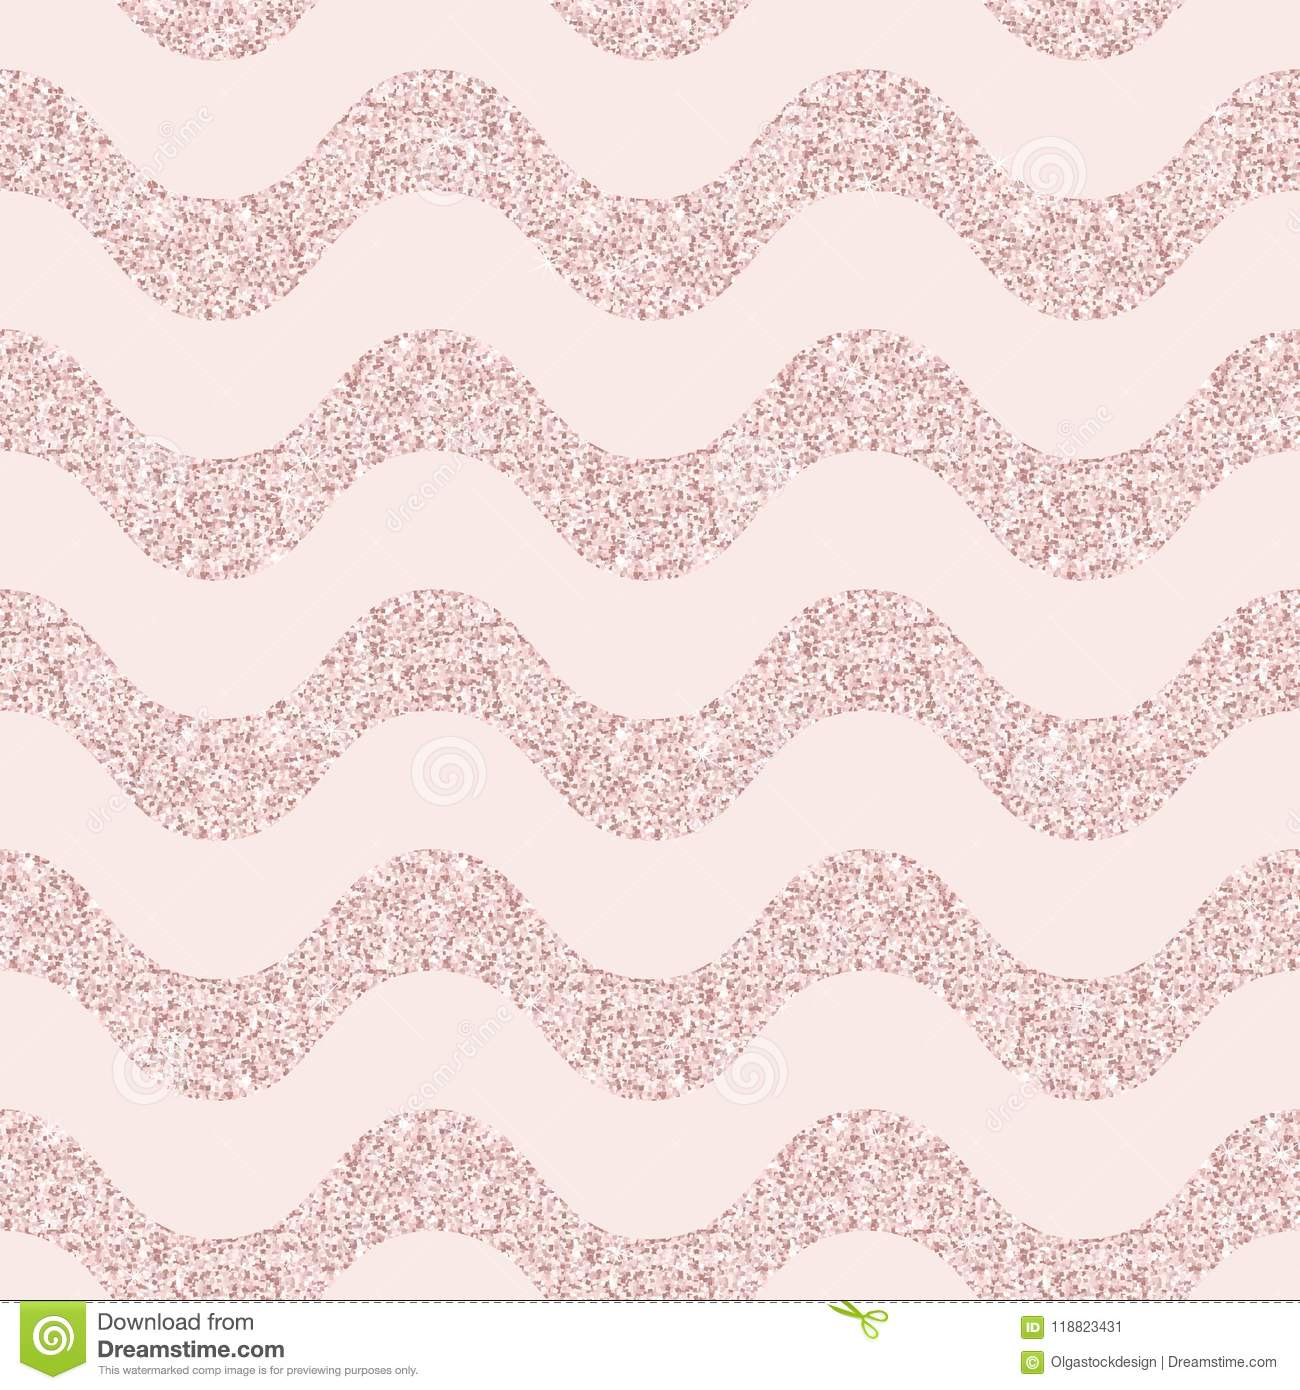 Pink Glitter Vector Seamless Pattern With Wavy Lines